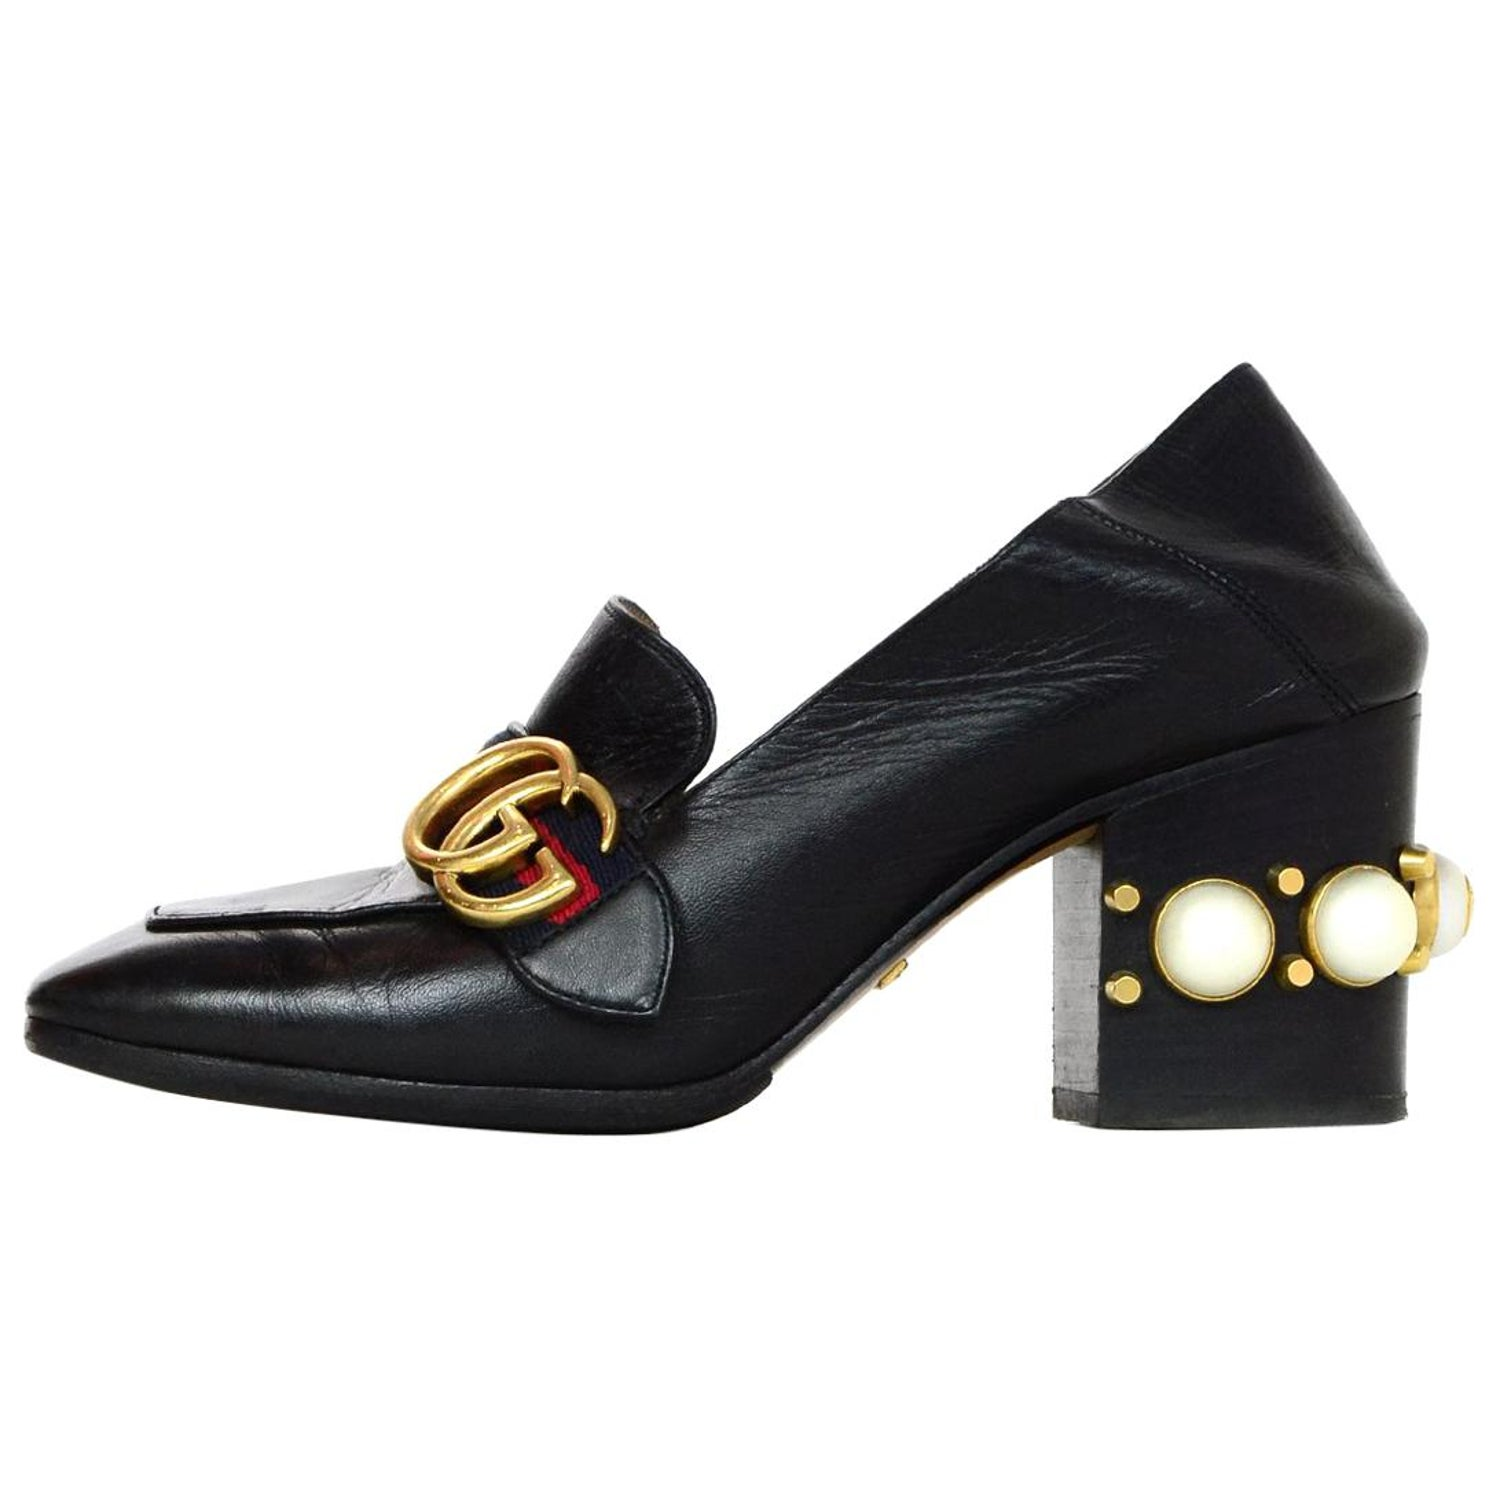 d6f272f05 Gucci Black Leather Collapsible Shoes W/ Faux Pearl Heels Sz 35.5 For Sale  at 1stdibs